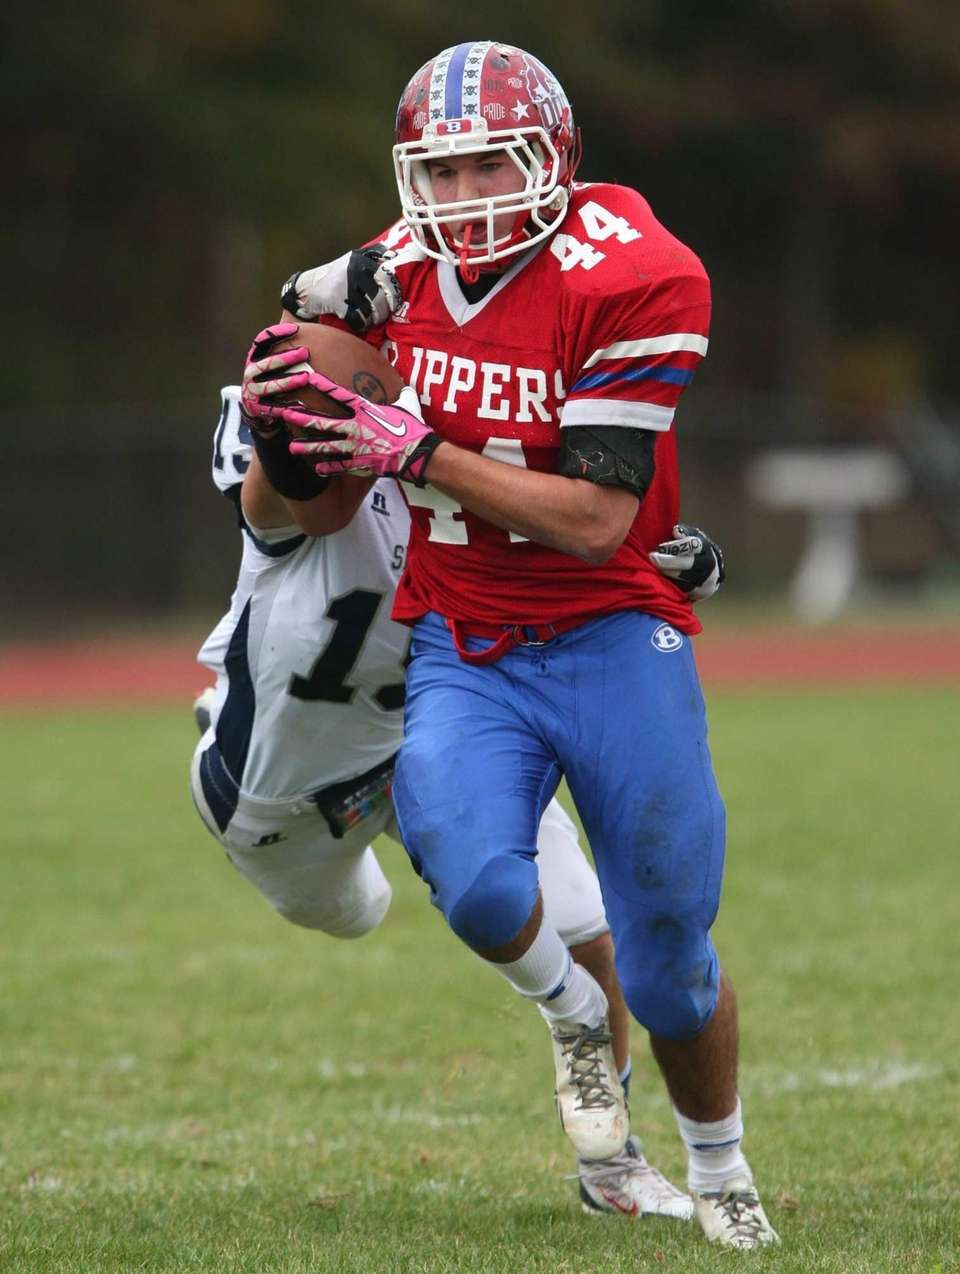 Bellport's Connor Cipp catches a pass agaisnt Eastport